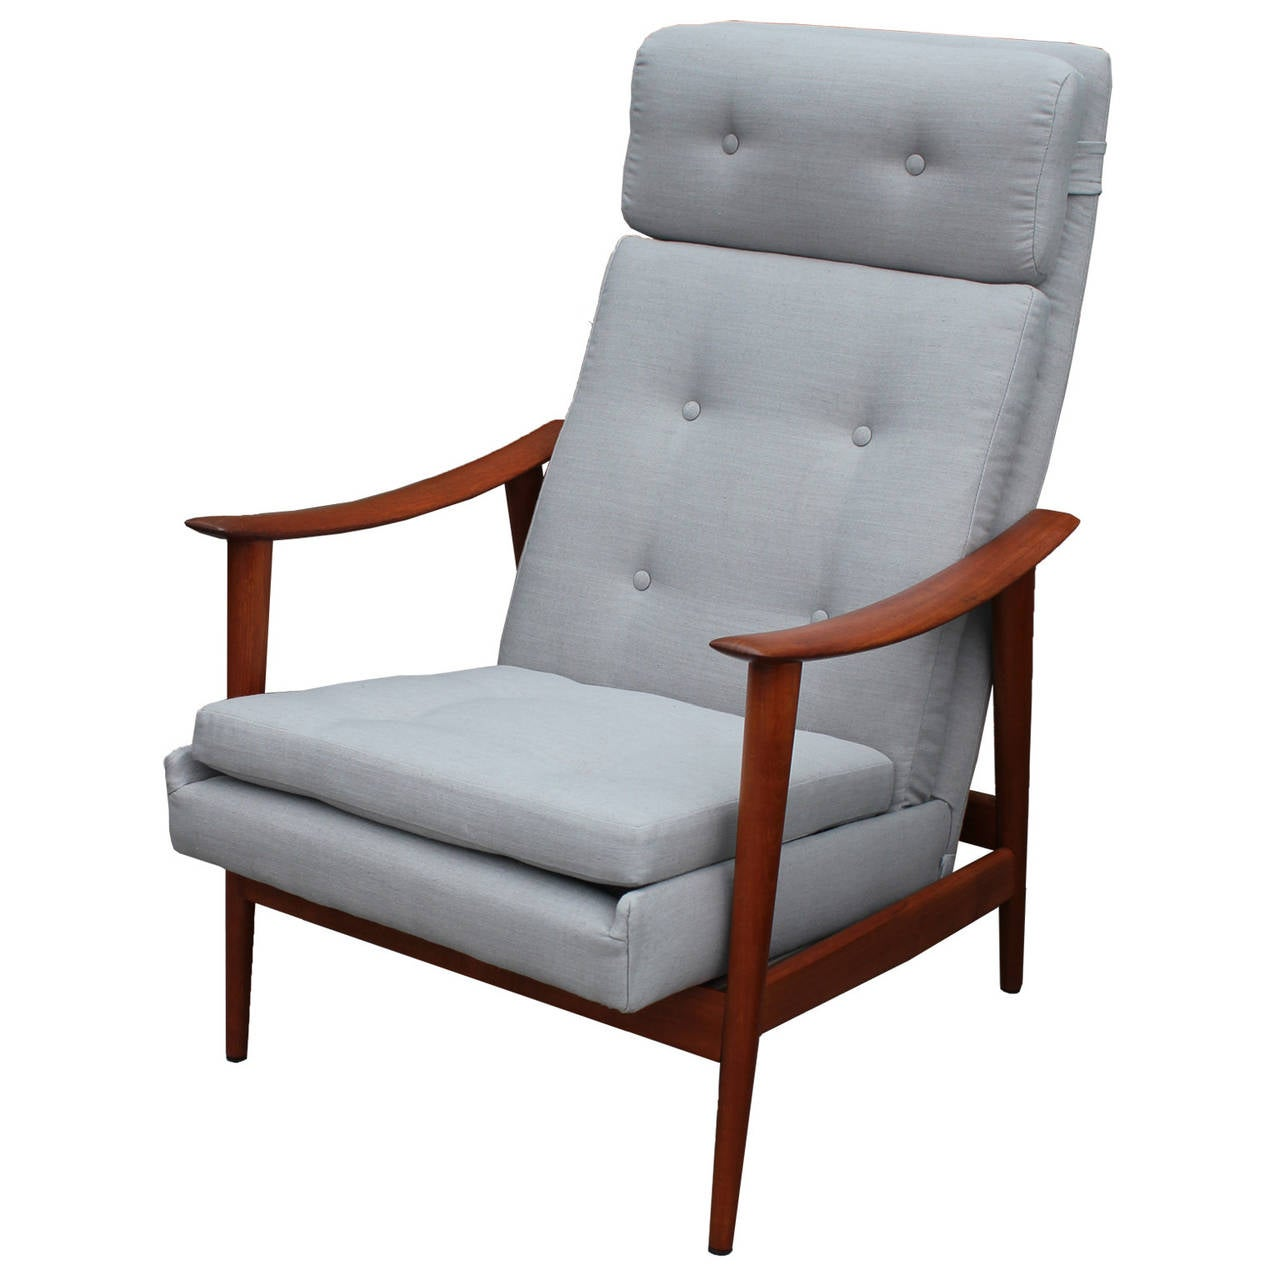 Restored Scandinavian Teak Recliner in Grey Linen 2  sc 1 st  1stDibs & Restored Scandinavian Teak Recliner in Grey Linen at 1stdibs islam-shia.org